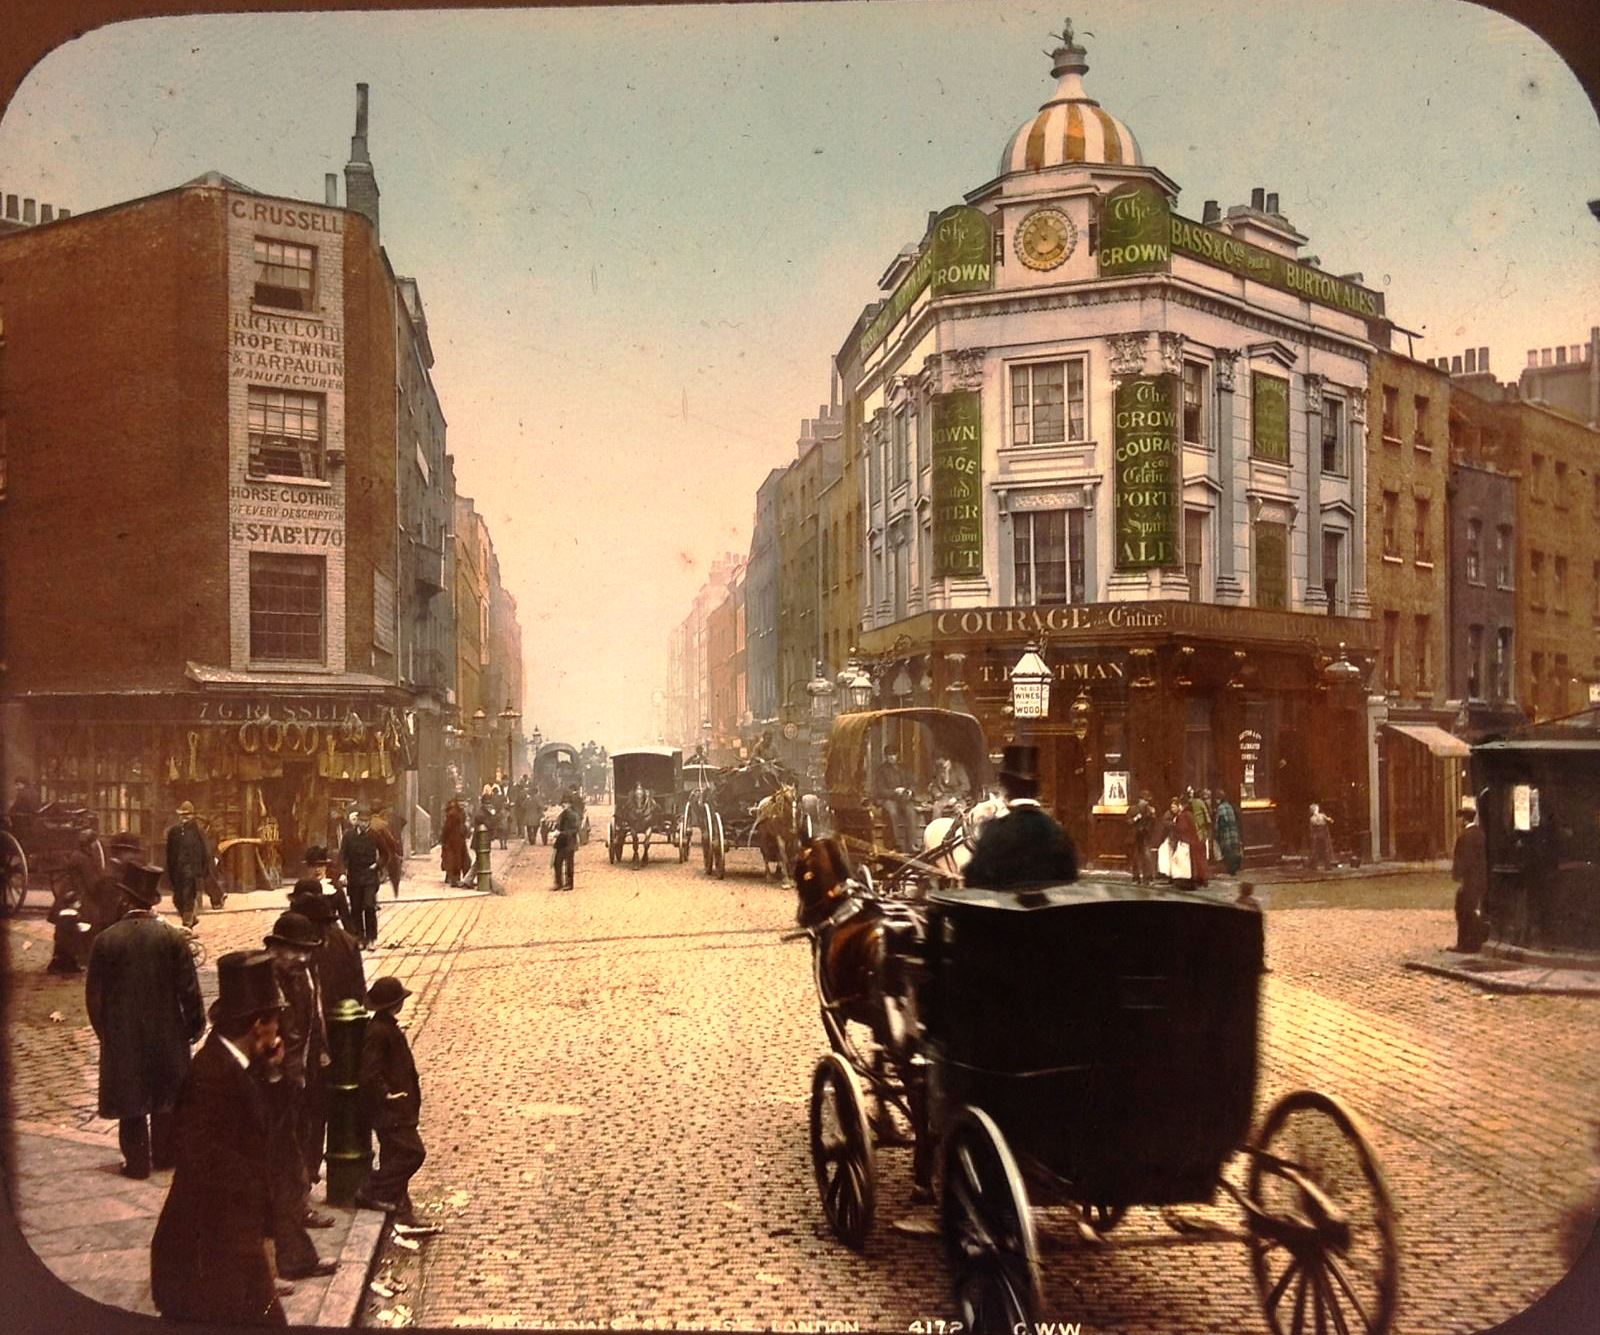 Seven Dials c. 1890, a rare hand-coolored lantern slide acquired by the trust, showing fashio, transport, street surfaces and much else in great detail